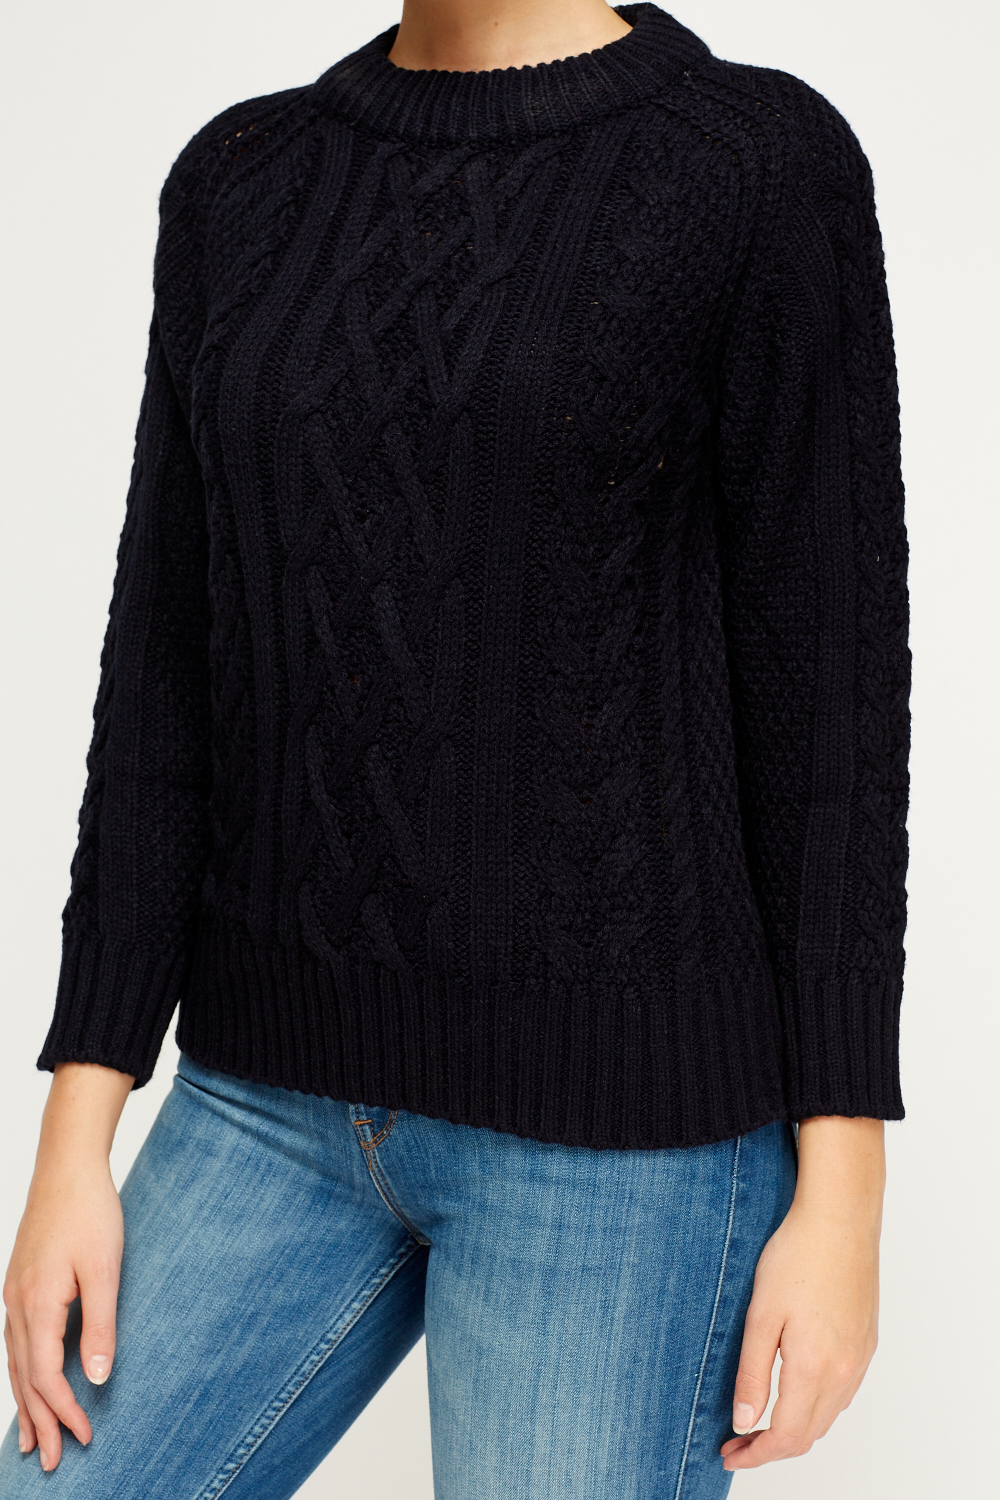 Cable Knit Casual Jumper - Just ?2